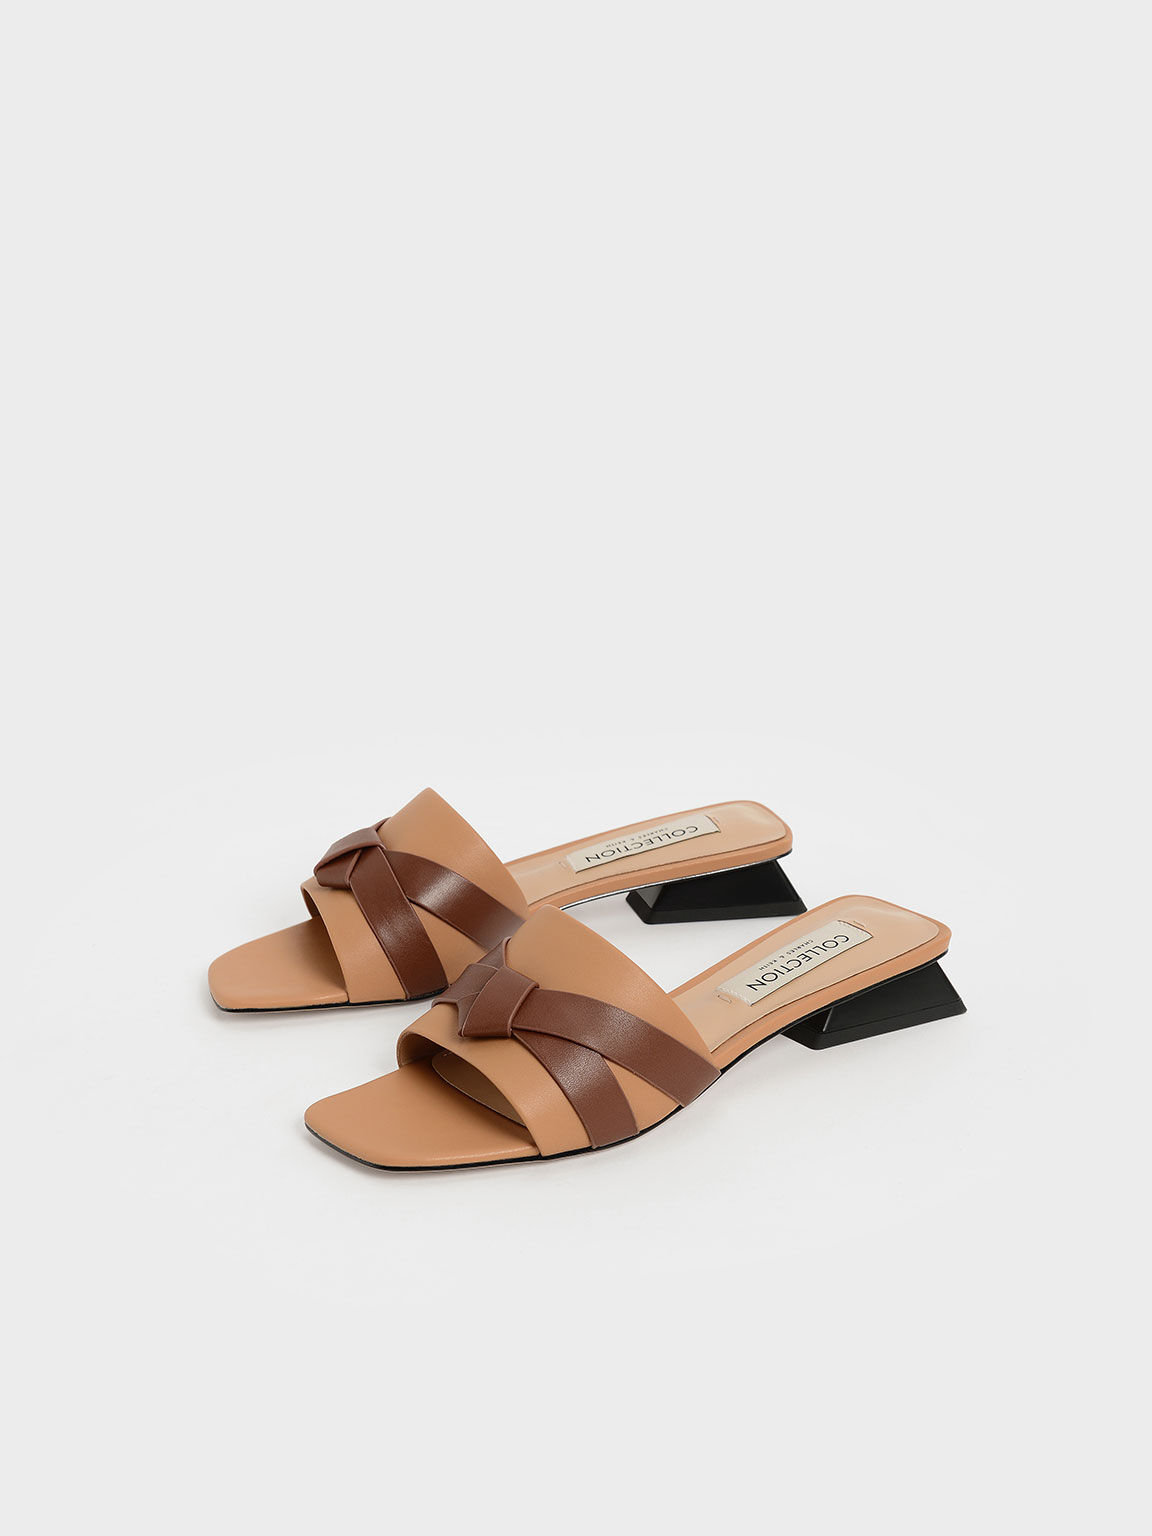 Leather Bow-Tie Trapeze Heel Mules, Caramel, hi-res